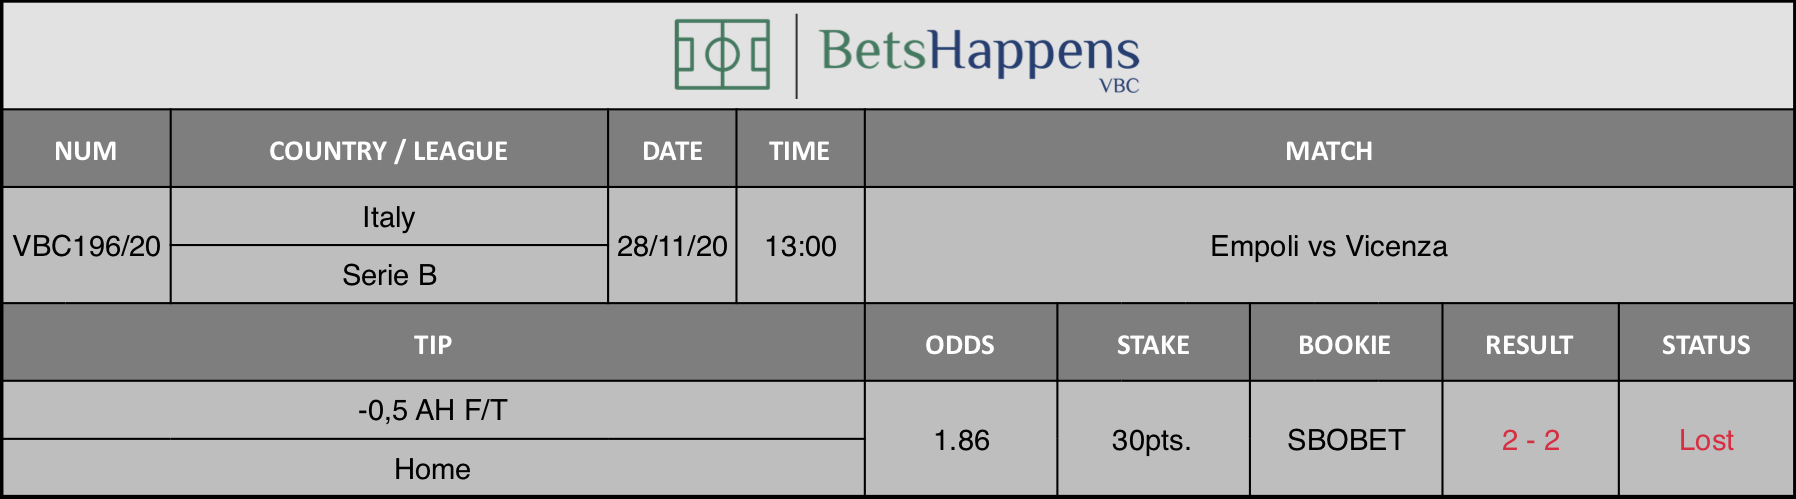 Results of our tip for the Empoli vs Vicenza match where -0,5 AH F/T  Home is recommended.